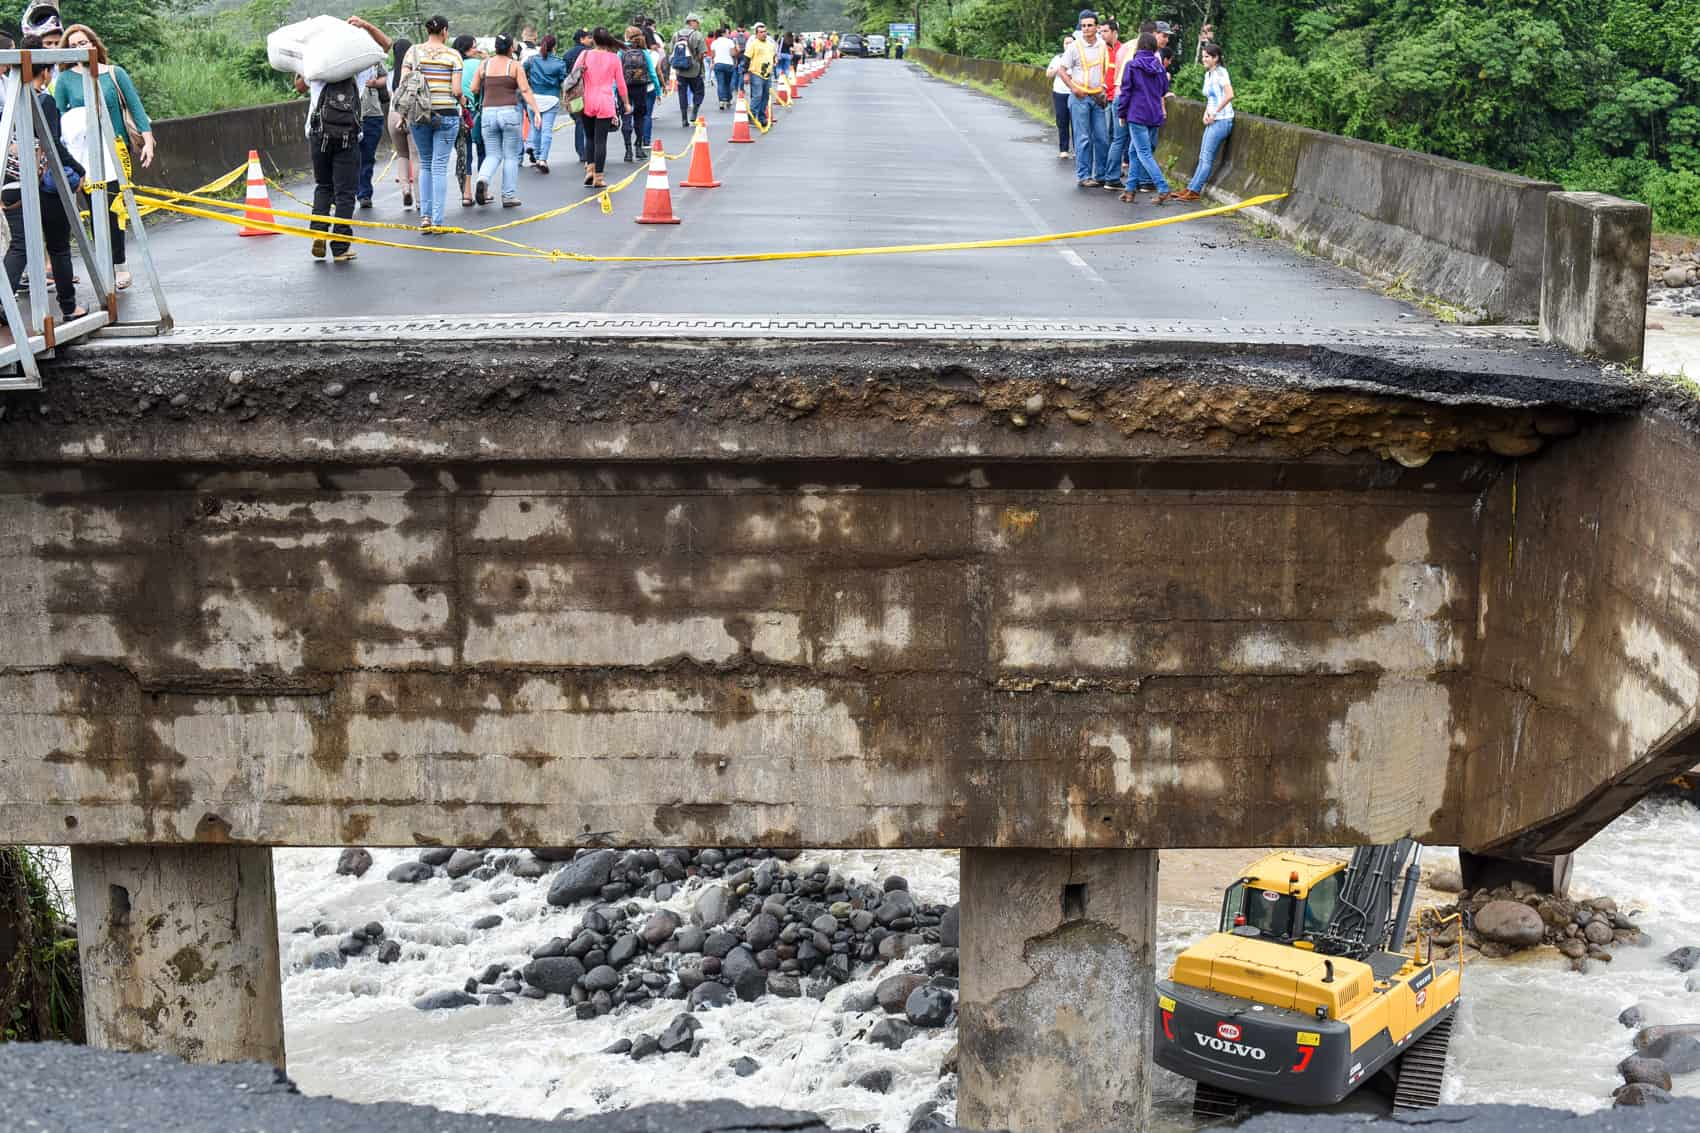 Part of the bridge over Río Sucio on the road to Sarapiquí in Guápiles, Limón was destroyed due to heavy rains and flooding last weekend.